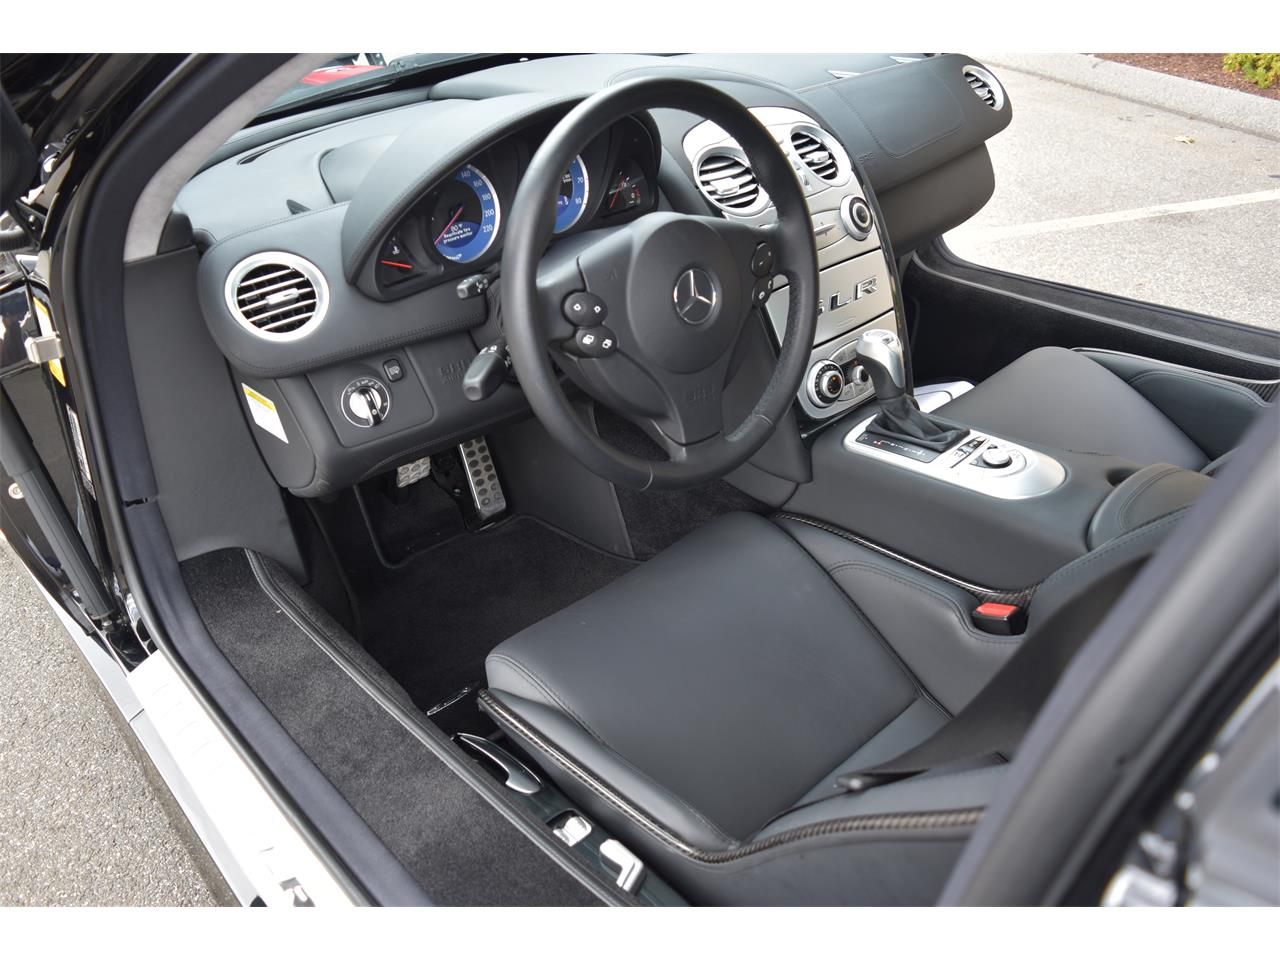 Large Picture of 2006 SLR McLaren located in WALLINGFORD Connecticut Auction Vehicle Offered by GT Motor Cars - LS3K